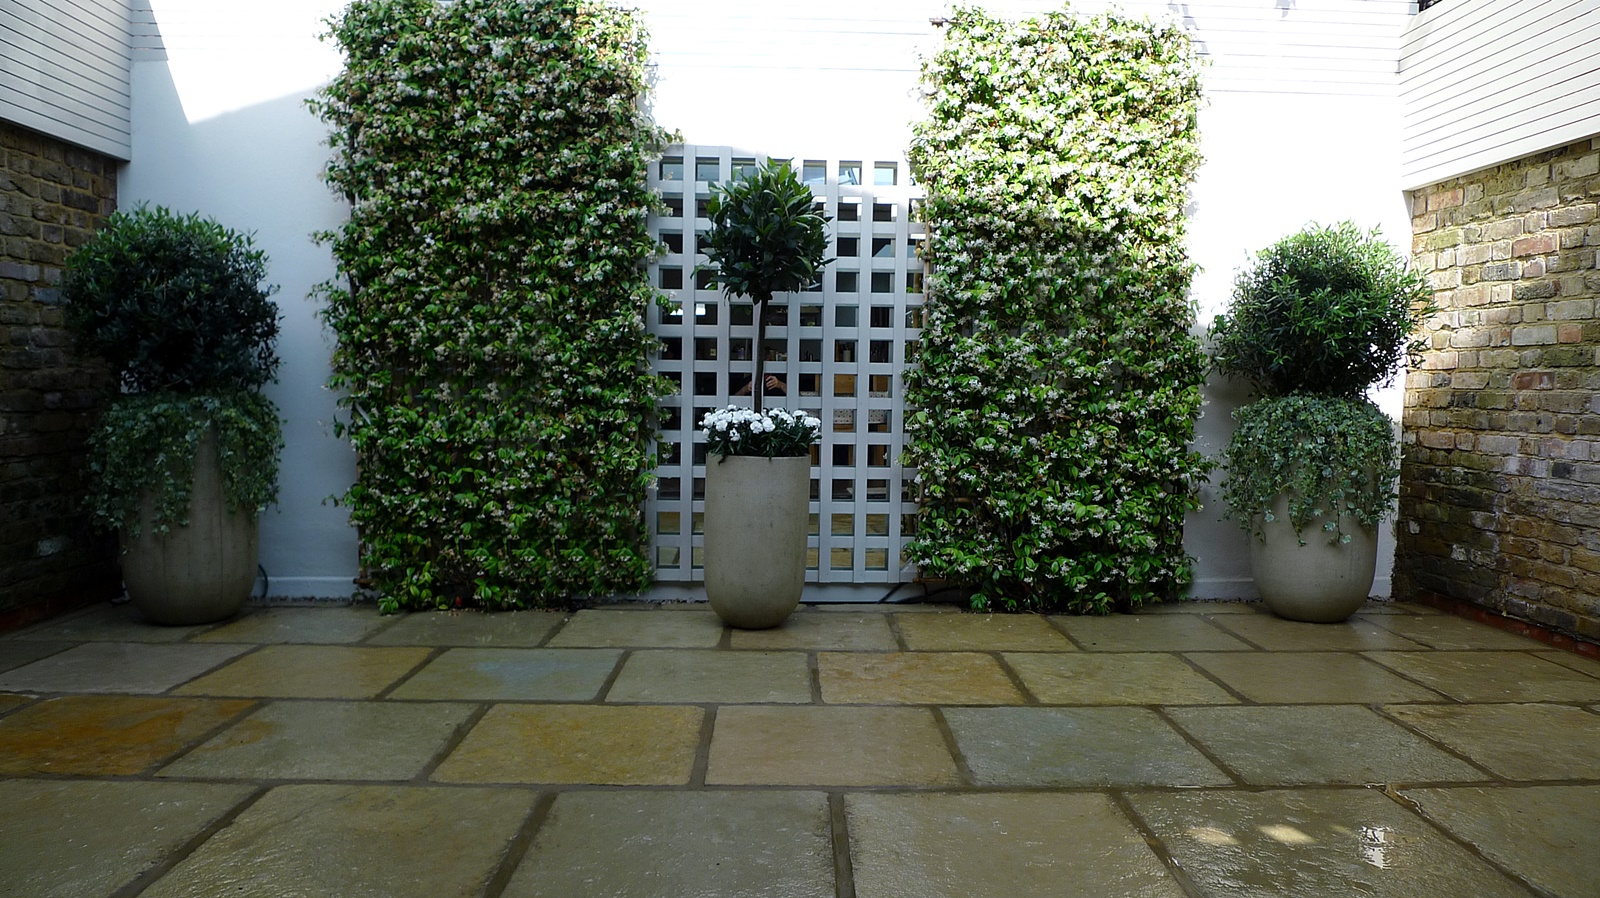 Courtyard minimalist contemporary garden design and designer knightsbridge london